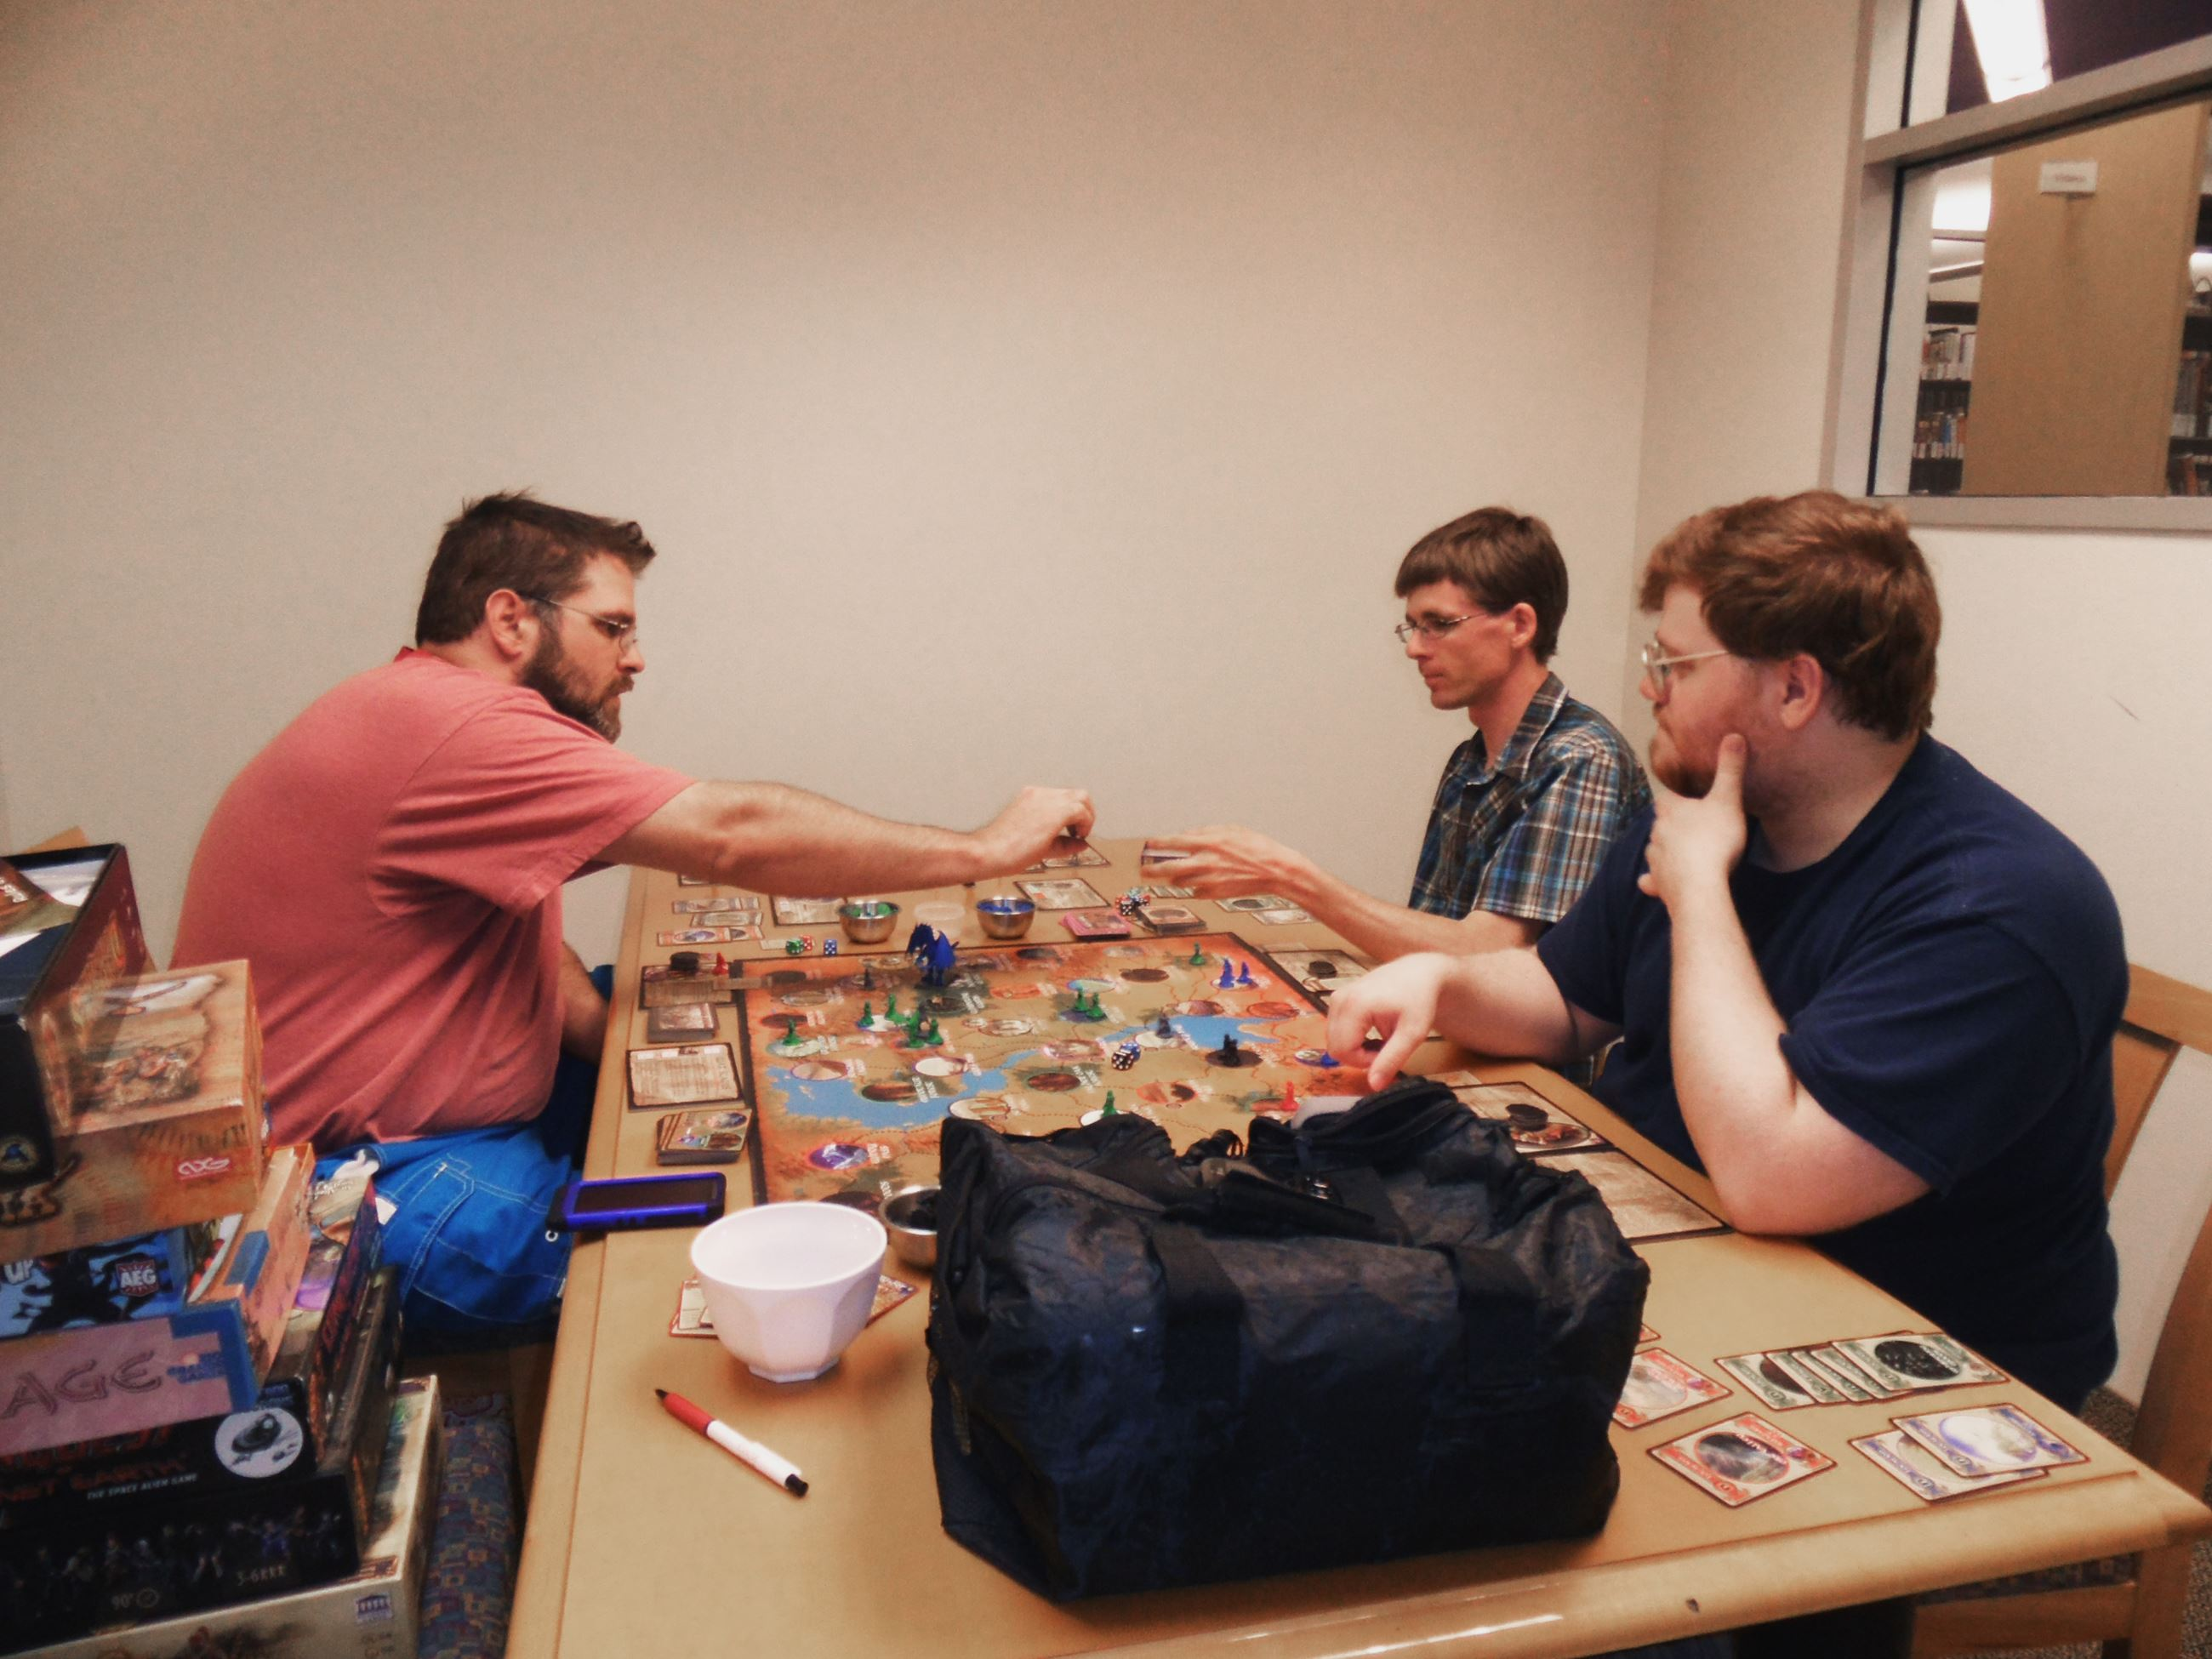 Study Room being used for board games by three male patrons